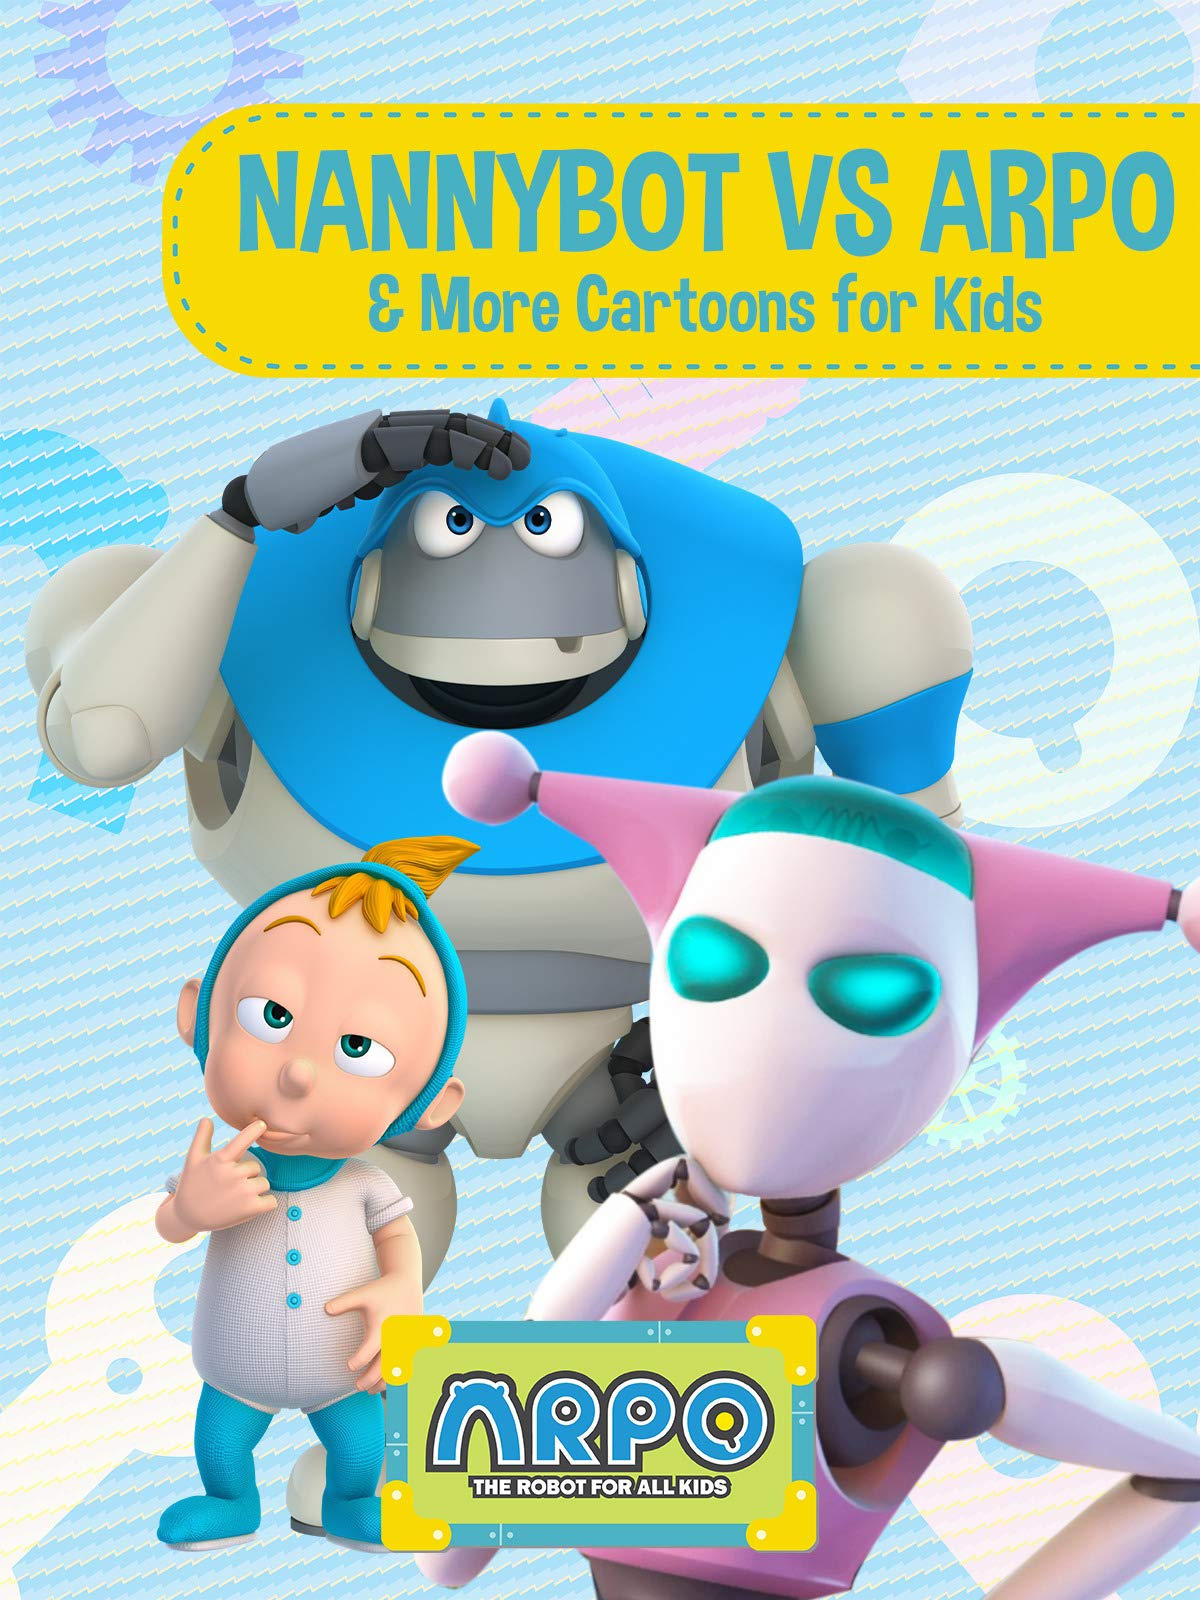 Arpo the Robot for All Kids  - NannyBot vs ARPO & More Cartoons for Kids on Amazon Prime Video UK